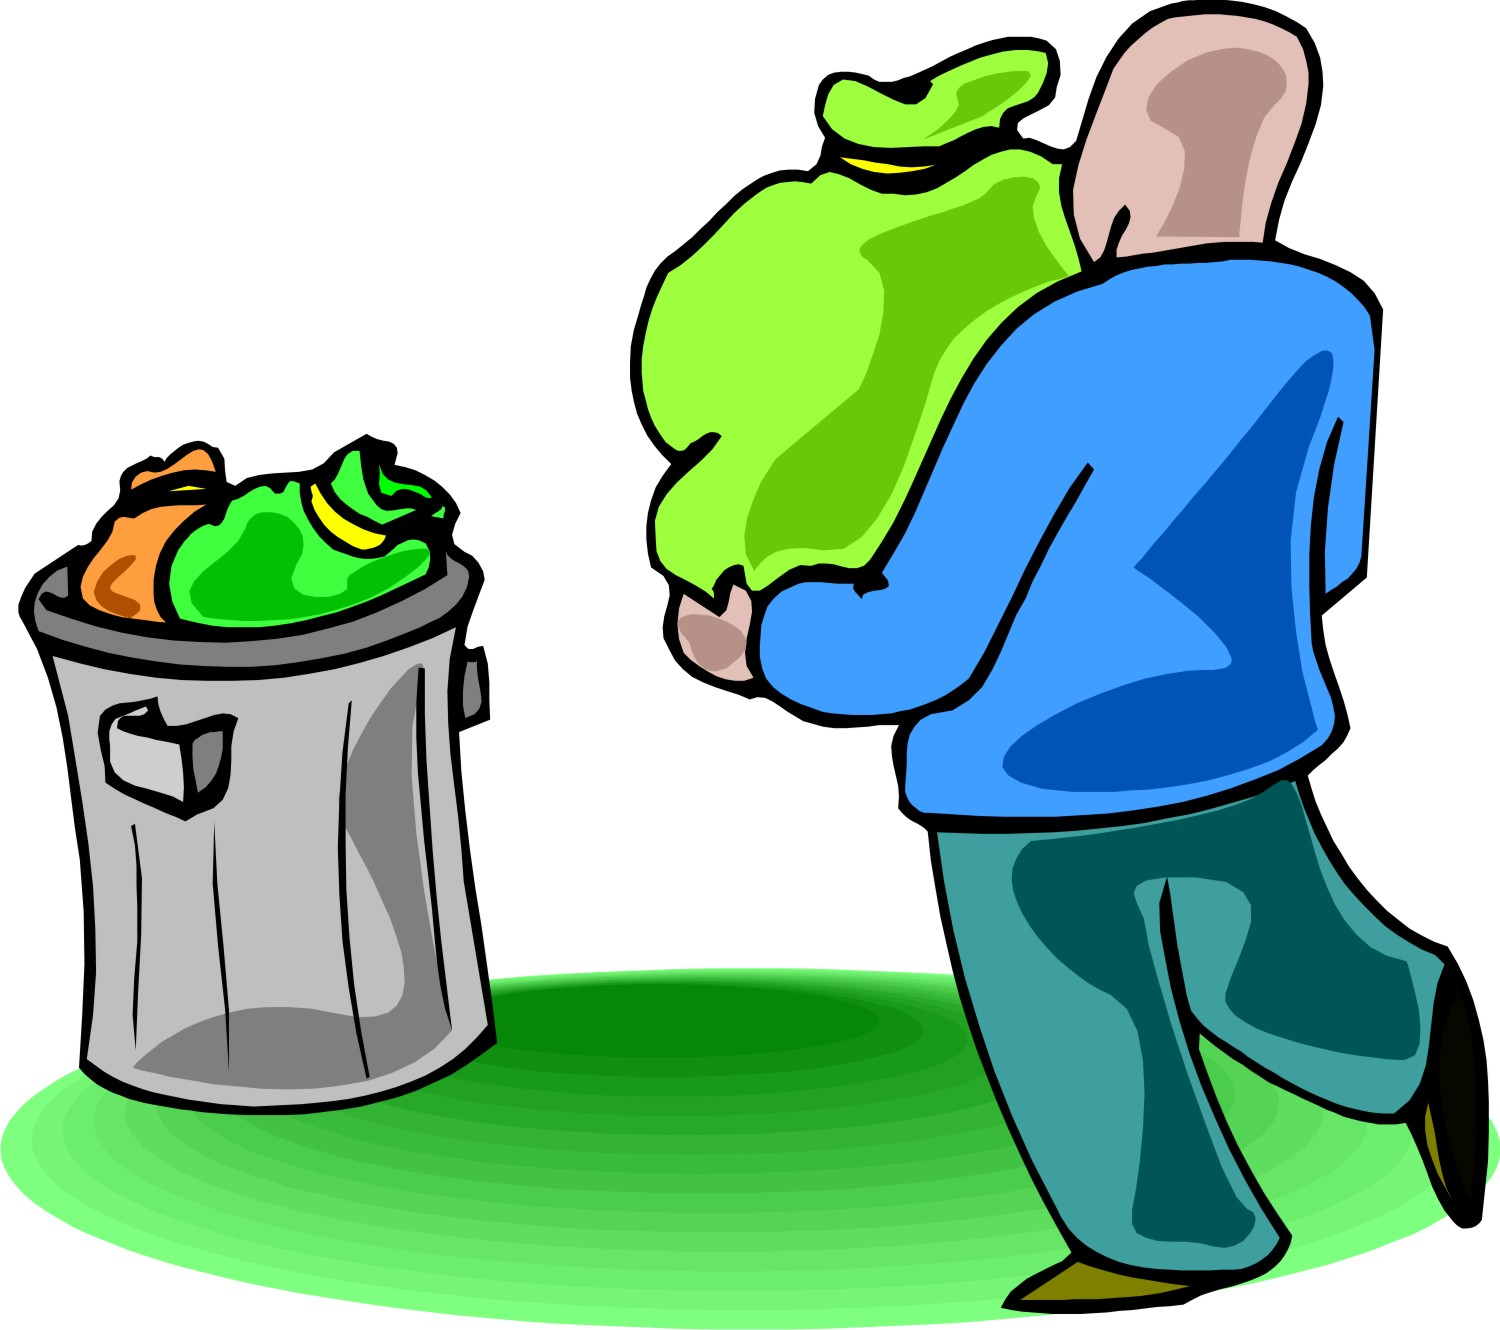 Throw Away Trash Clip Art N6 free image.